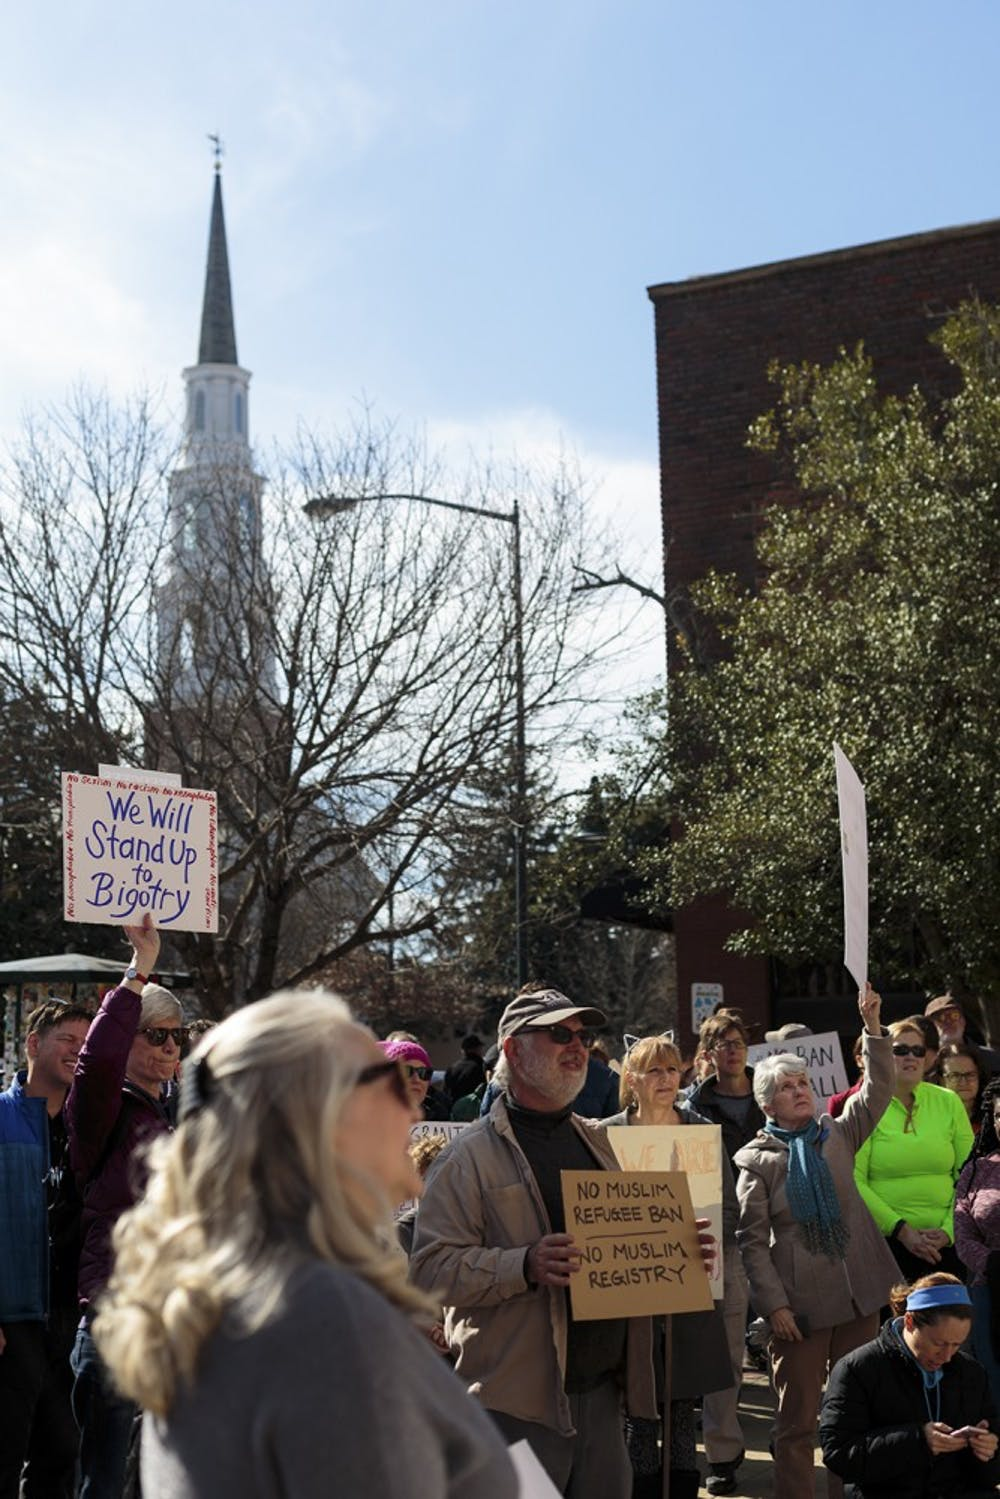 The immigration protest took place at the post office on Franklin St.